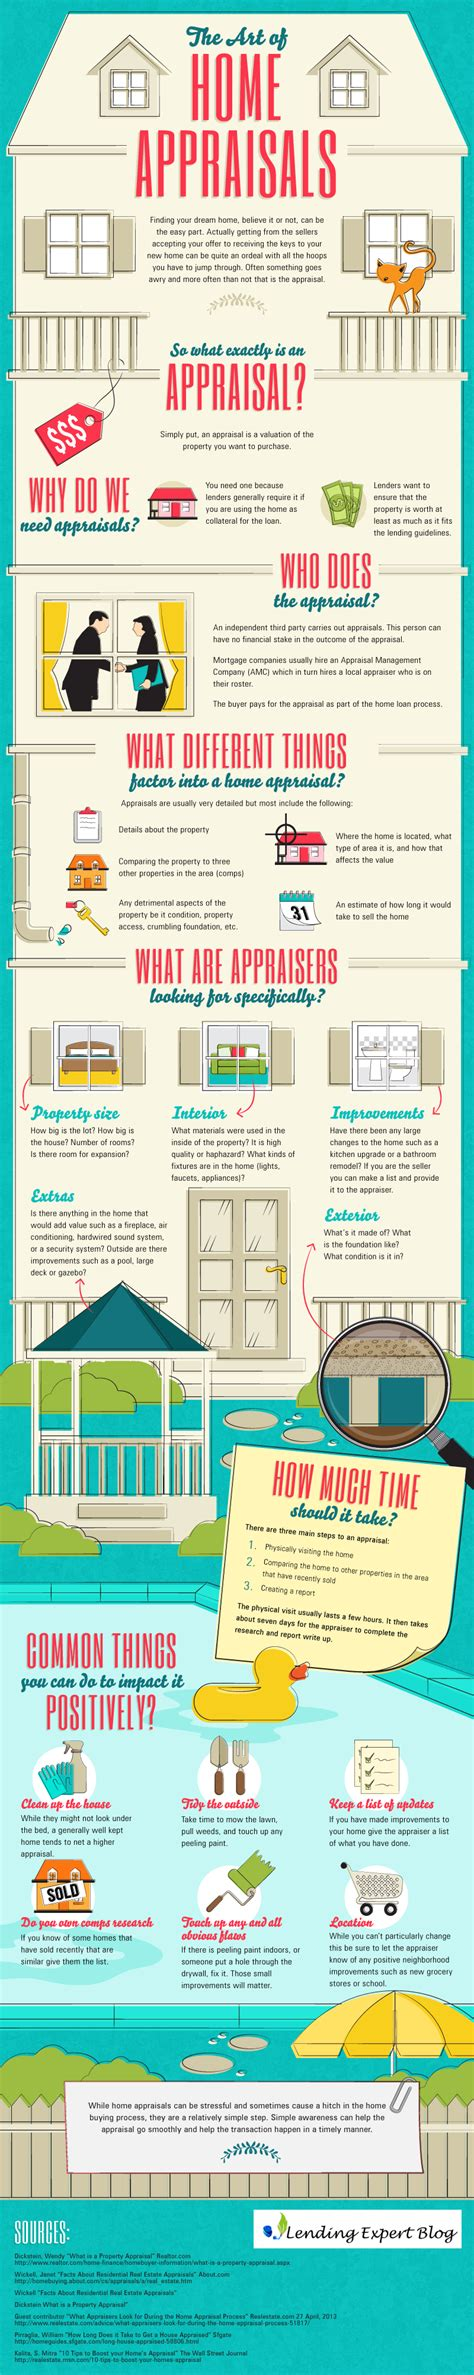 how to appraise a house buying a house appraisal 28 images home appraisal emulations us home price the